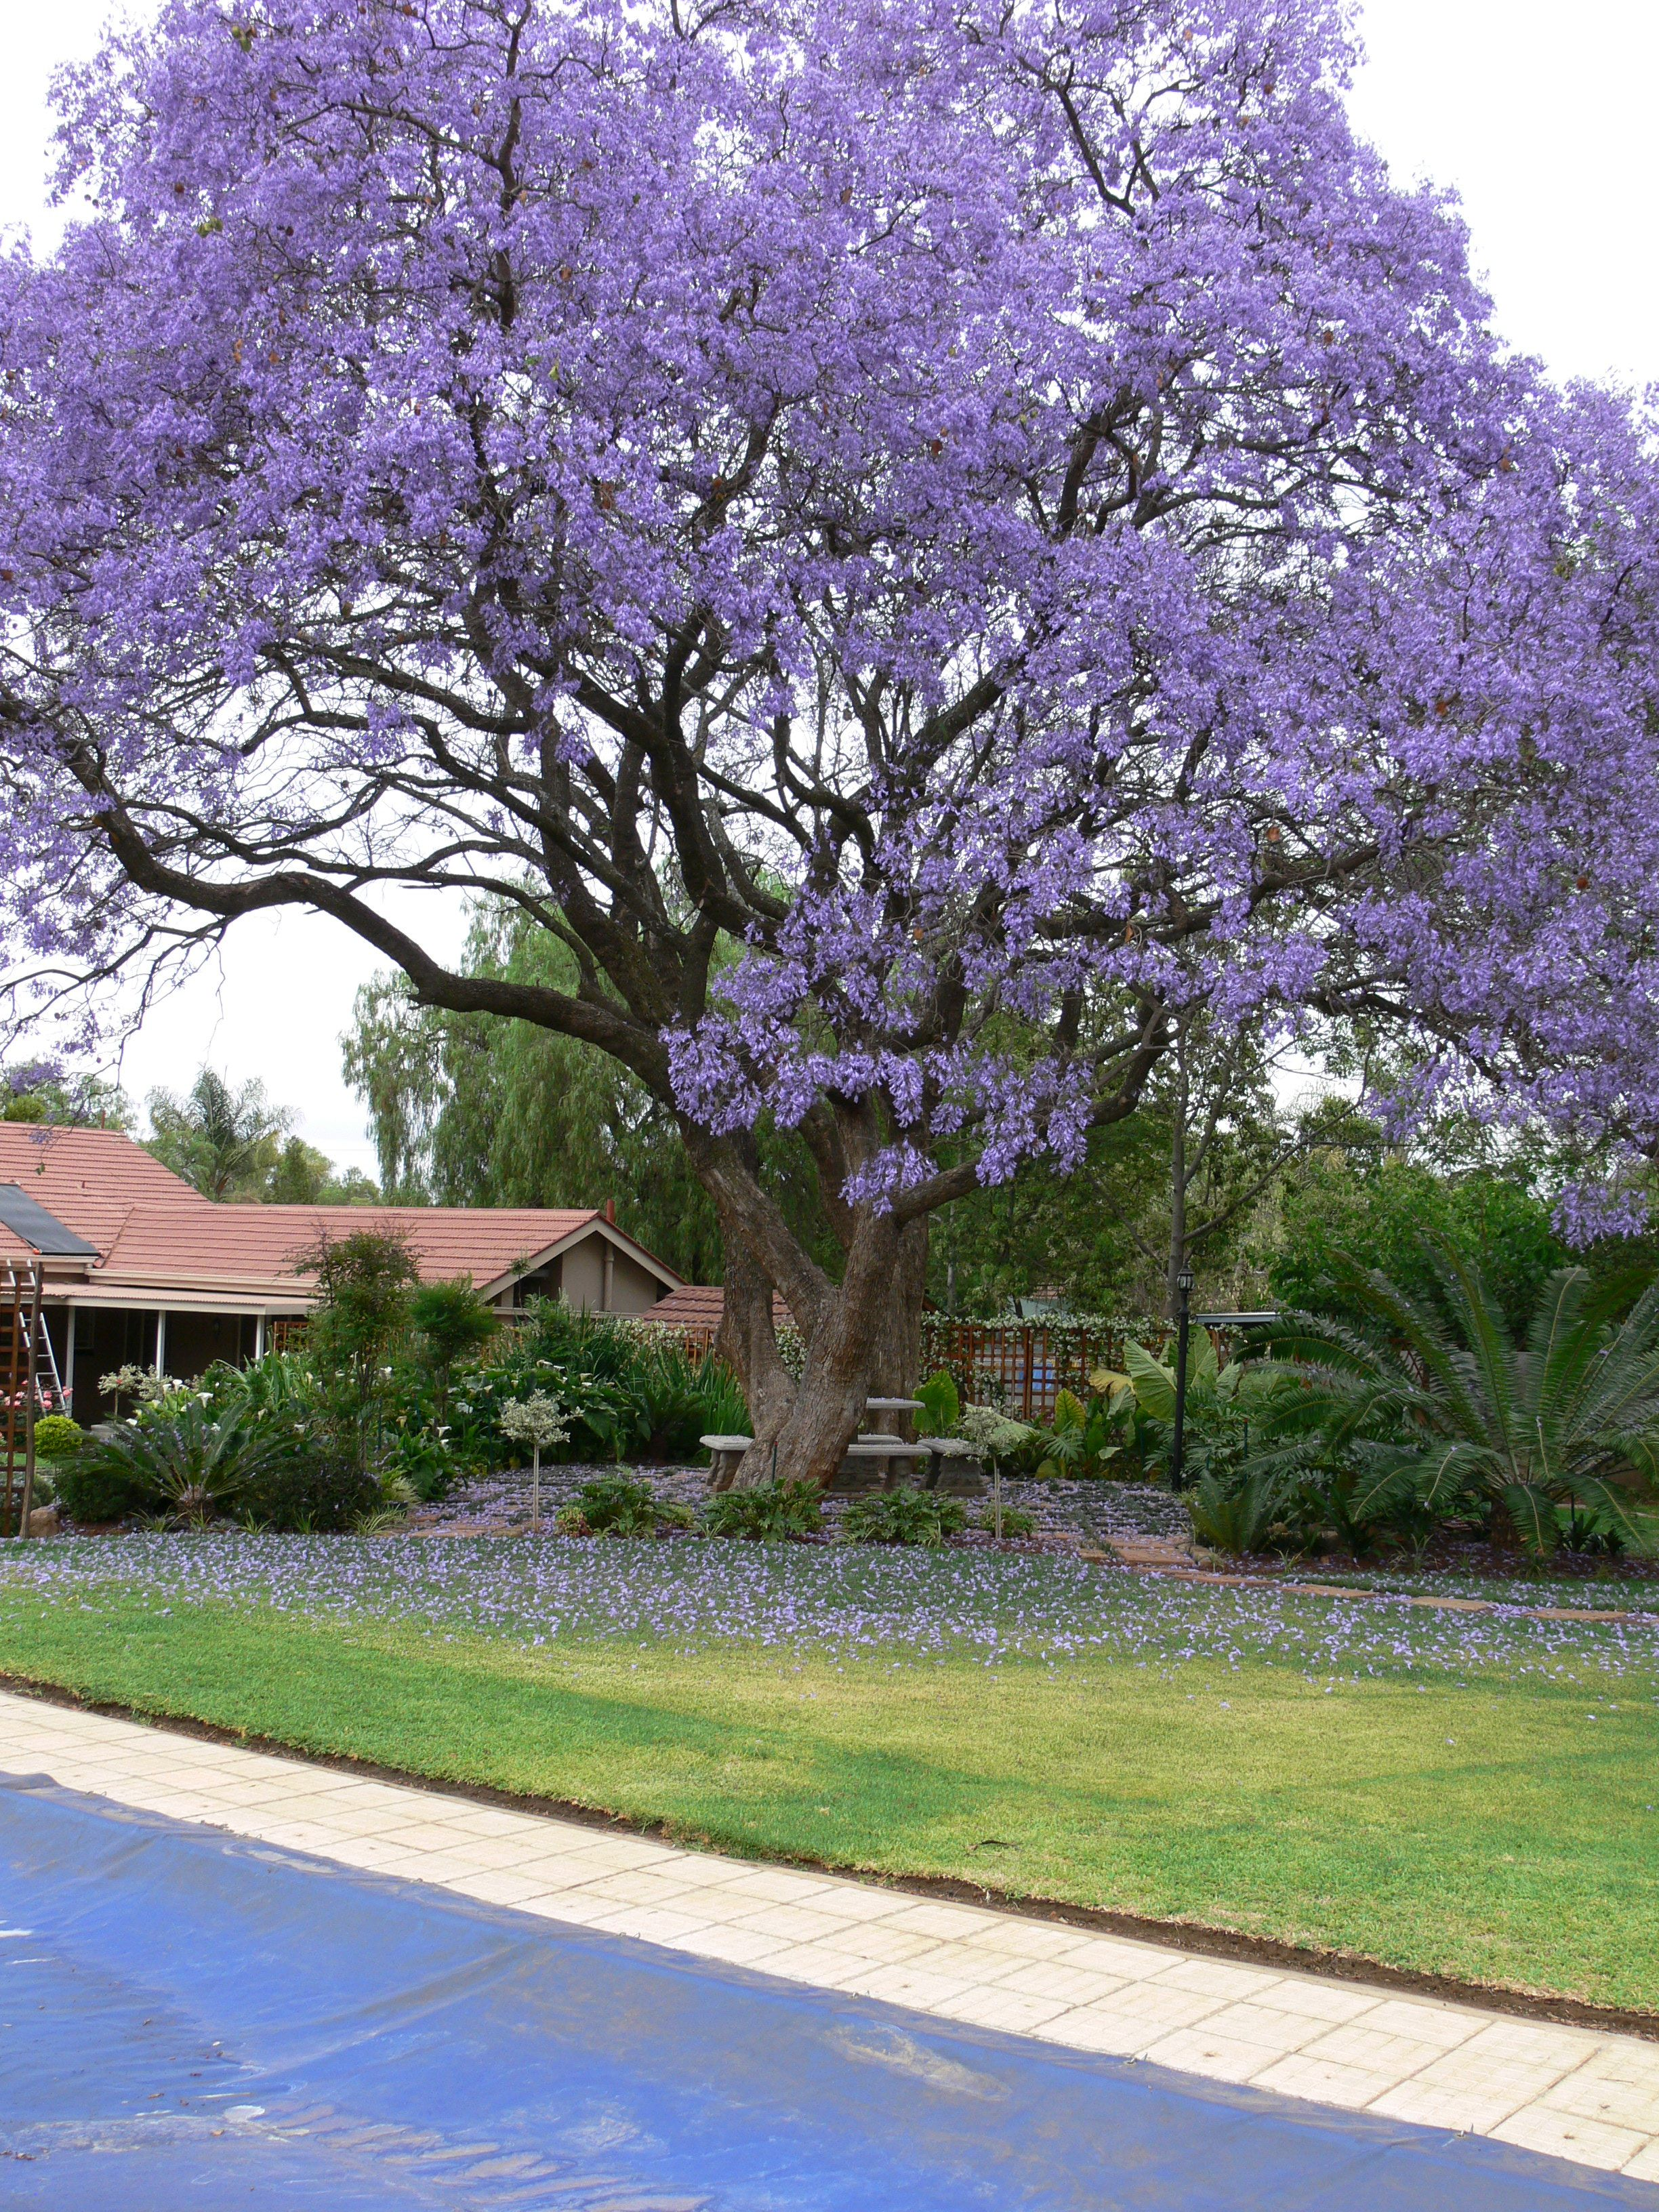 Jacaranda tree purple flowers peak in may native to south america jacaranda tree purple flowers peak in may native to south america thrive in southern california mightylinksfo